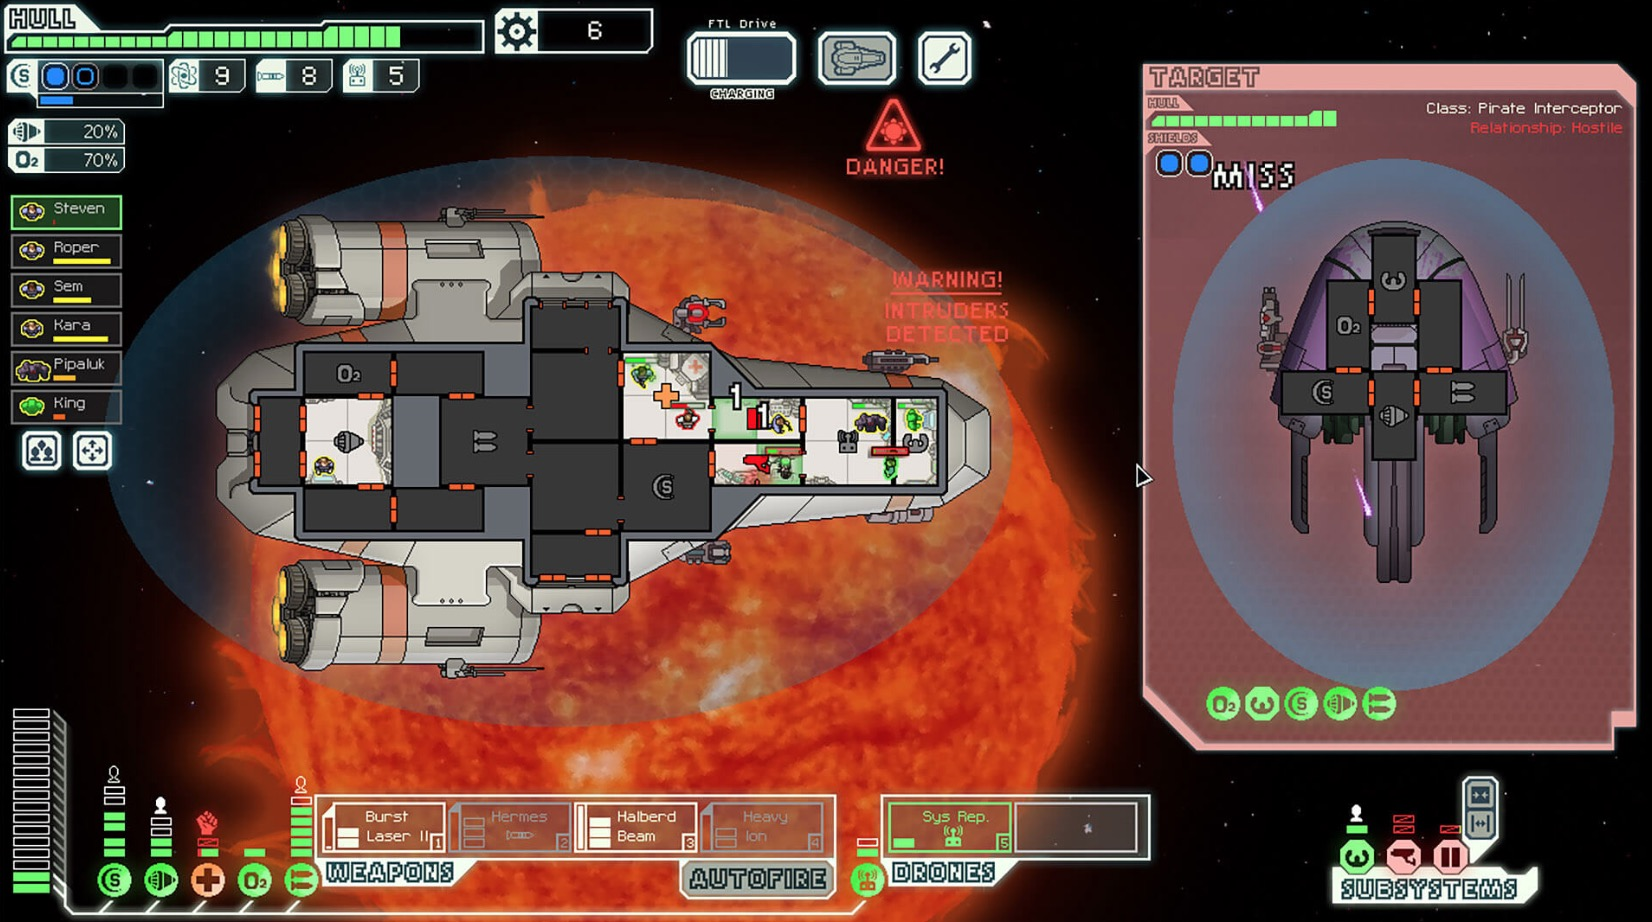 Epic Games Store offering the superb FTL: Faster Than Light for free today